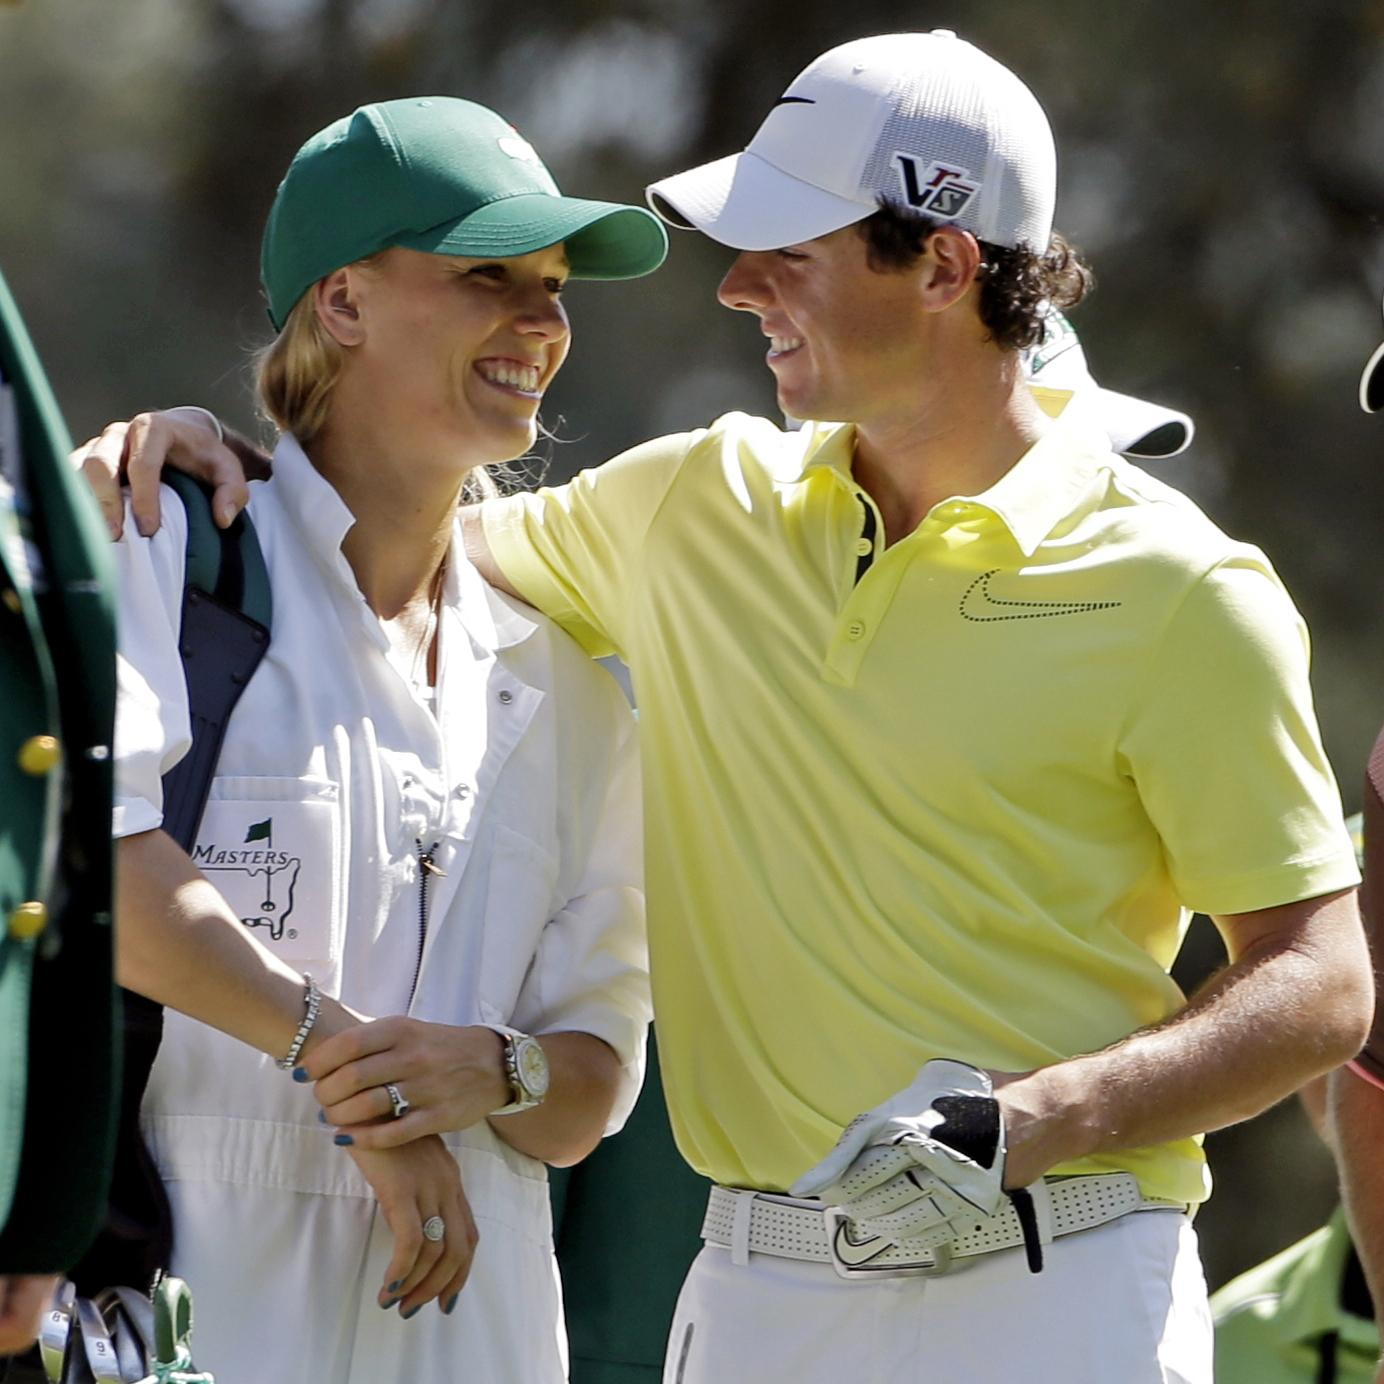 Wozniacki was once engaged to British golfer Rory McIlroy but the pair broke up